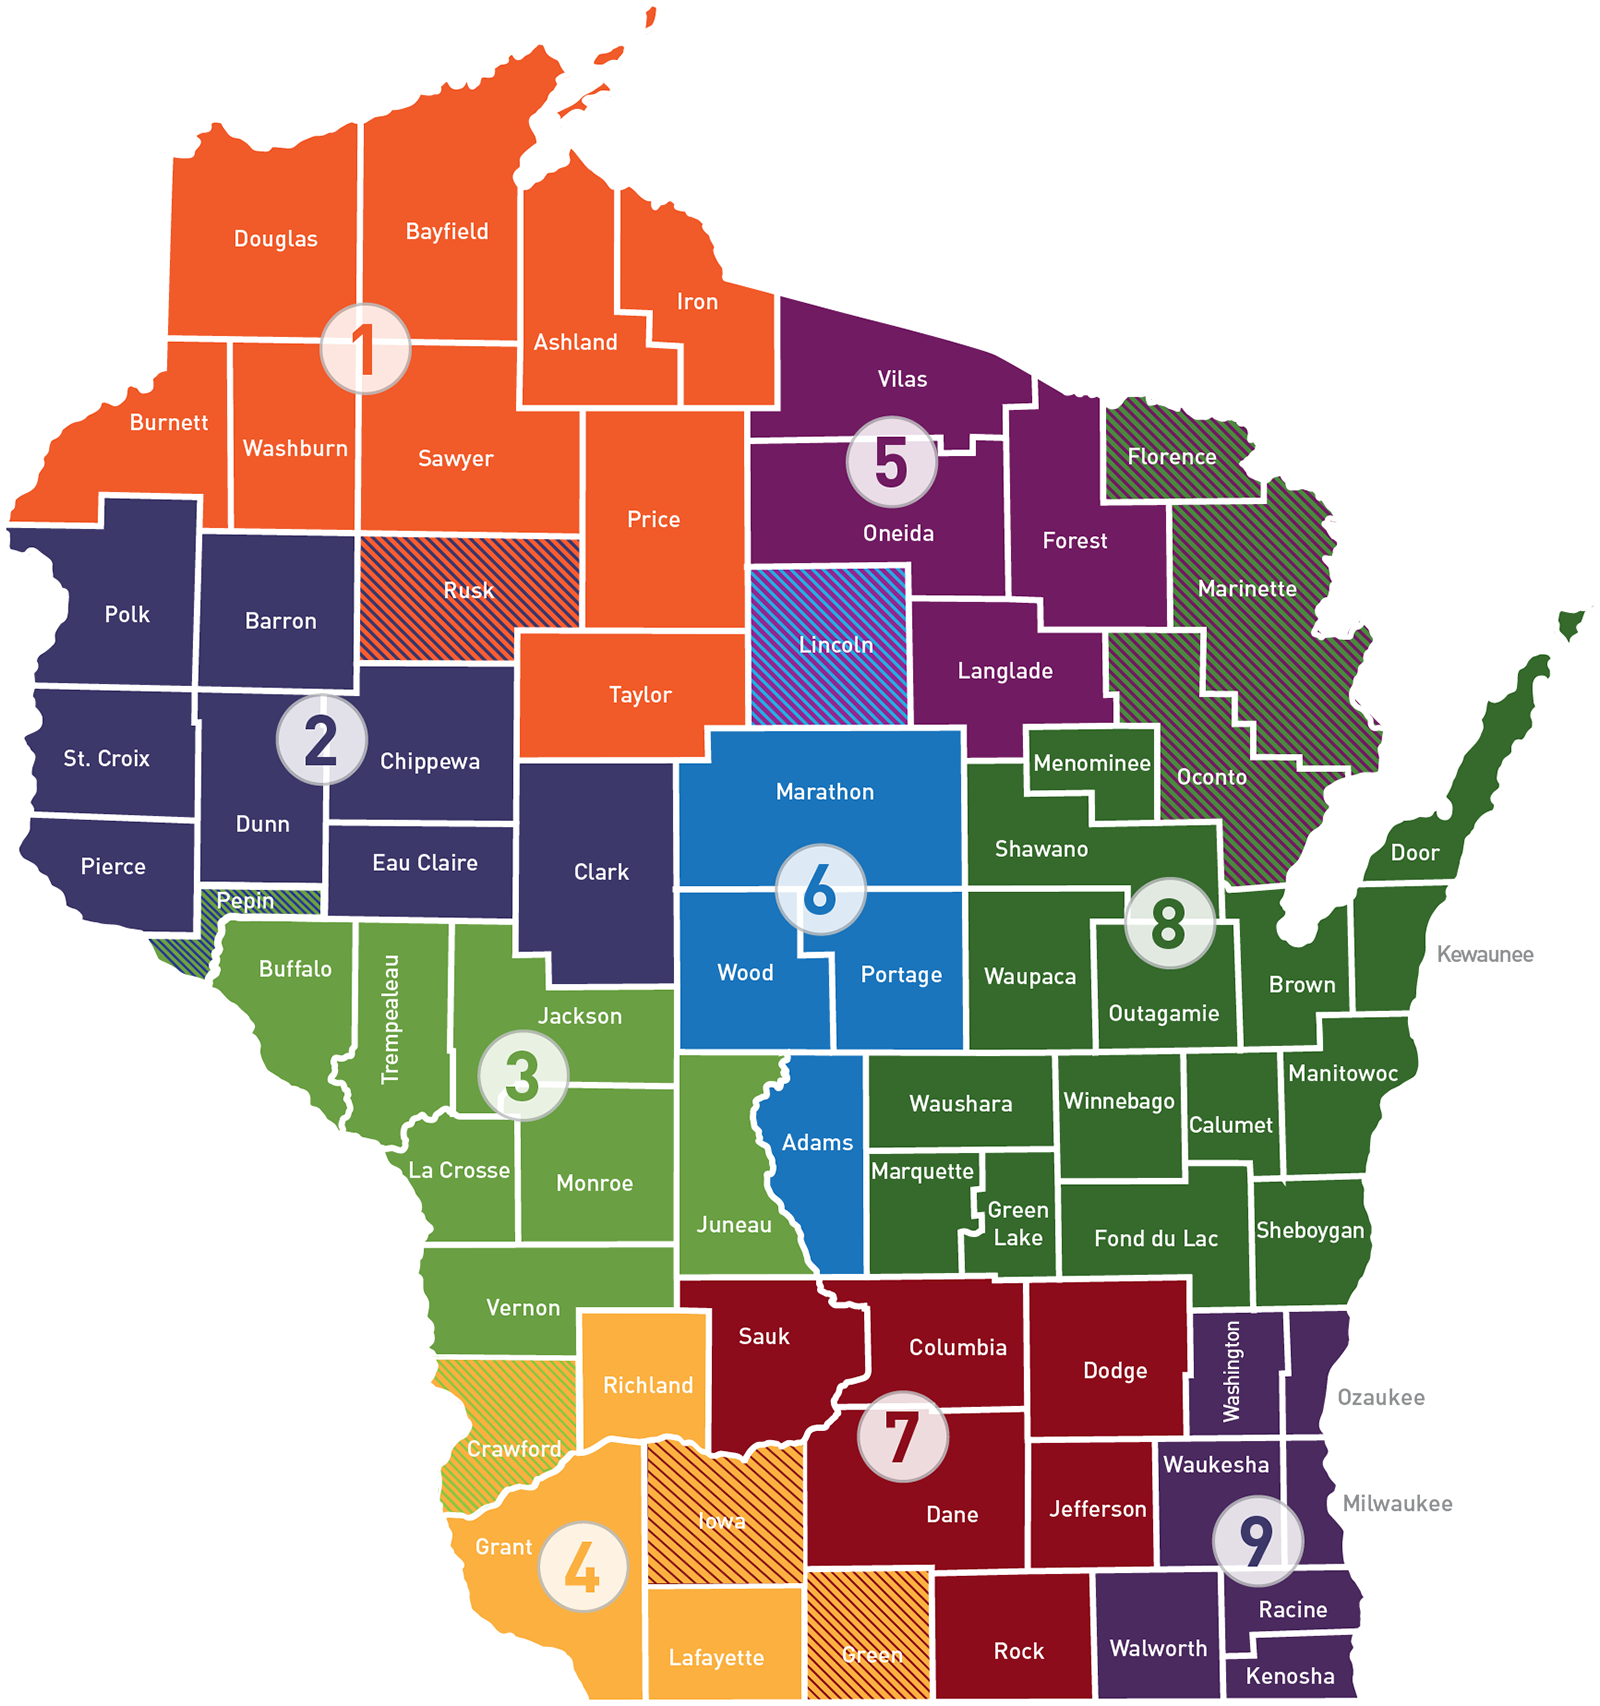 Wisconsin Regional Economic Development Organizations map